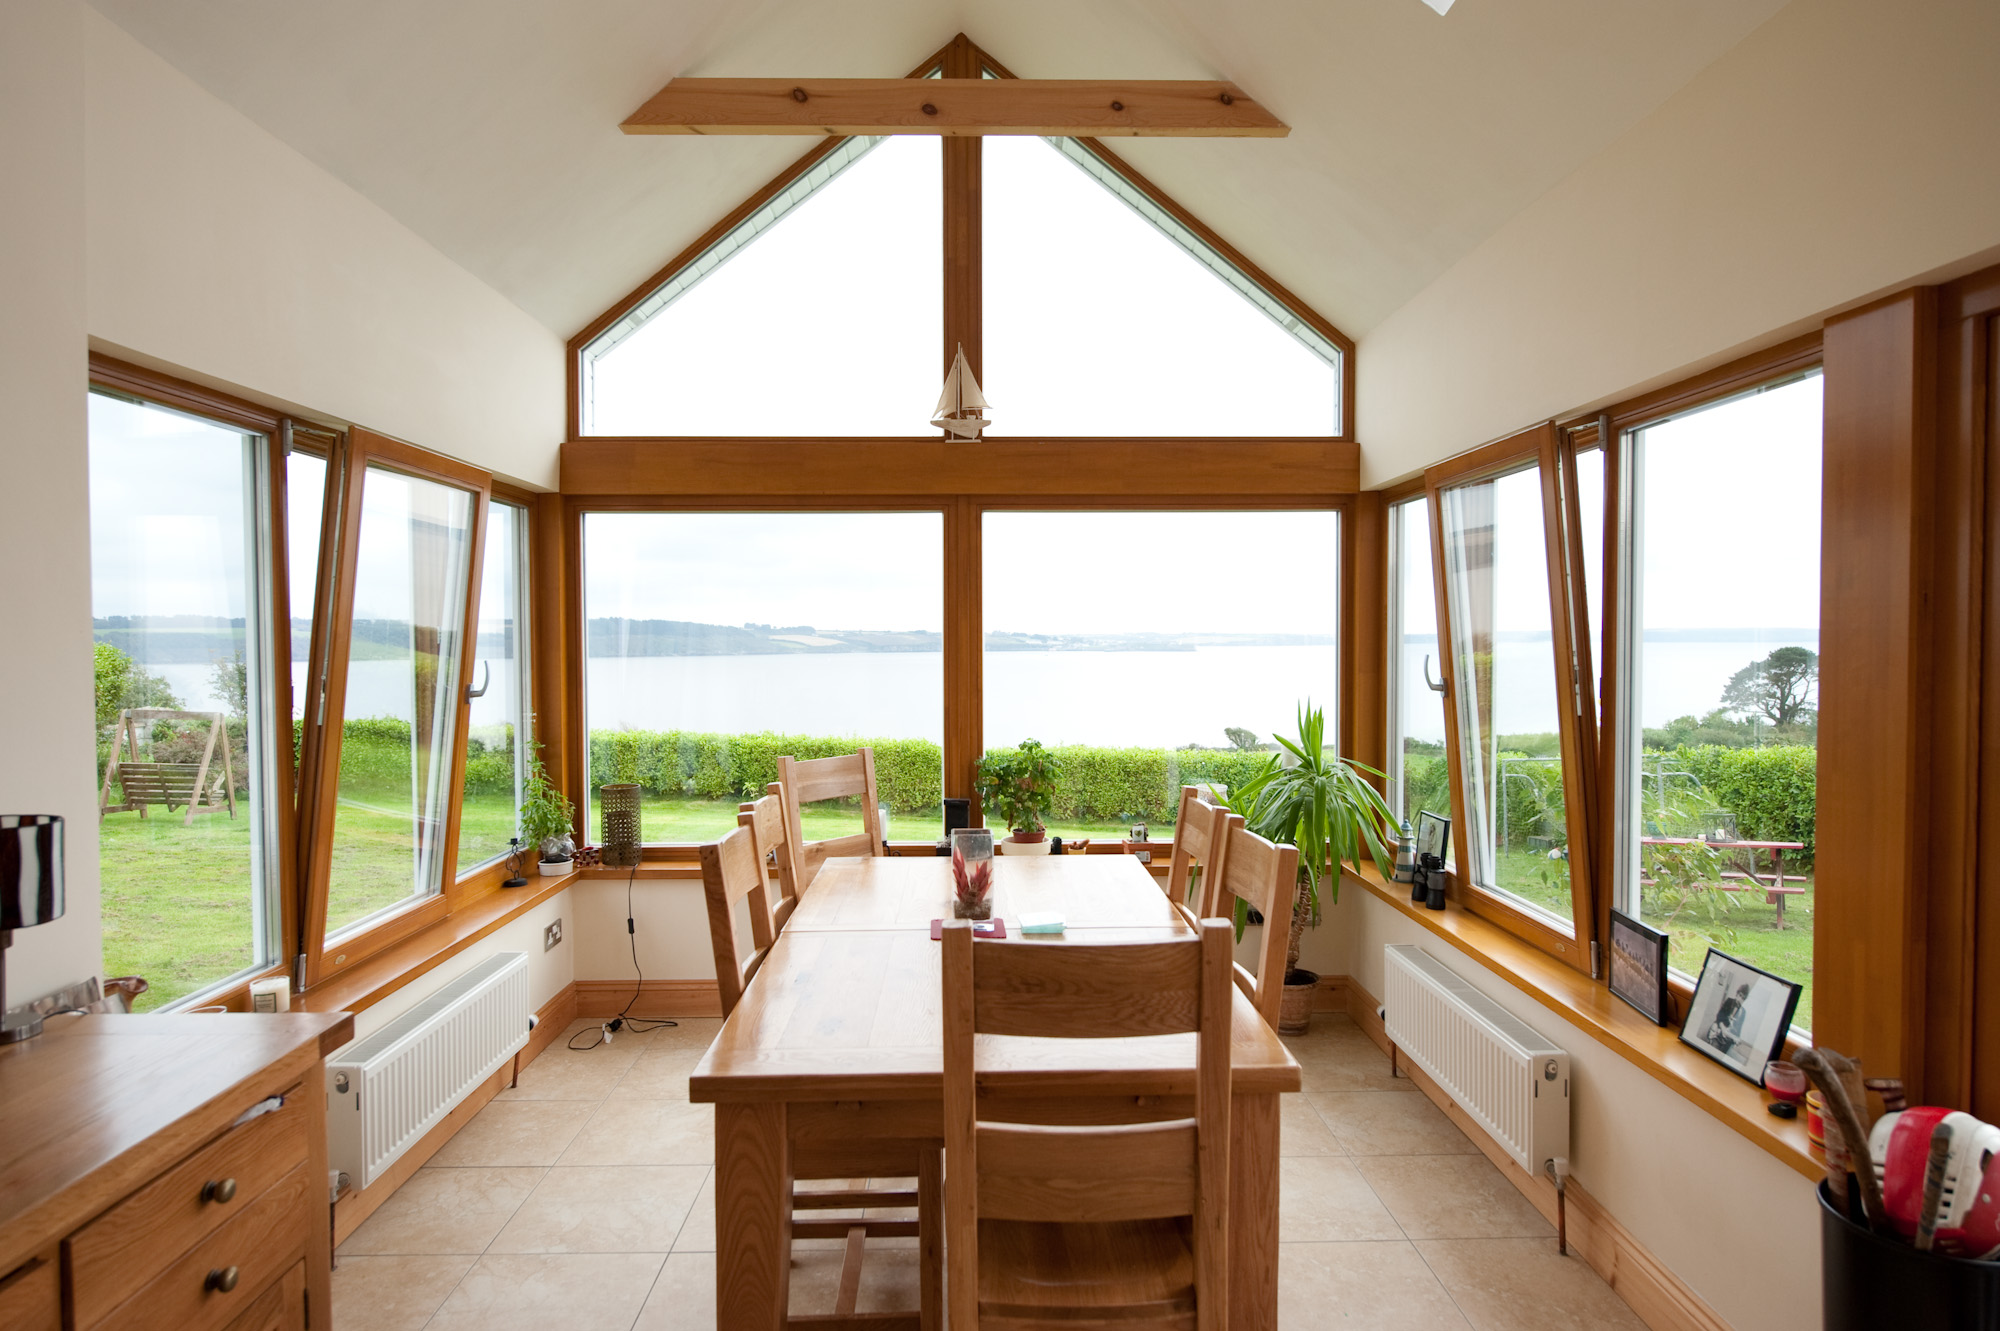 Euro timber tilt&turn windows